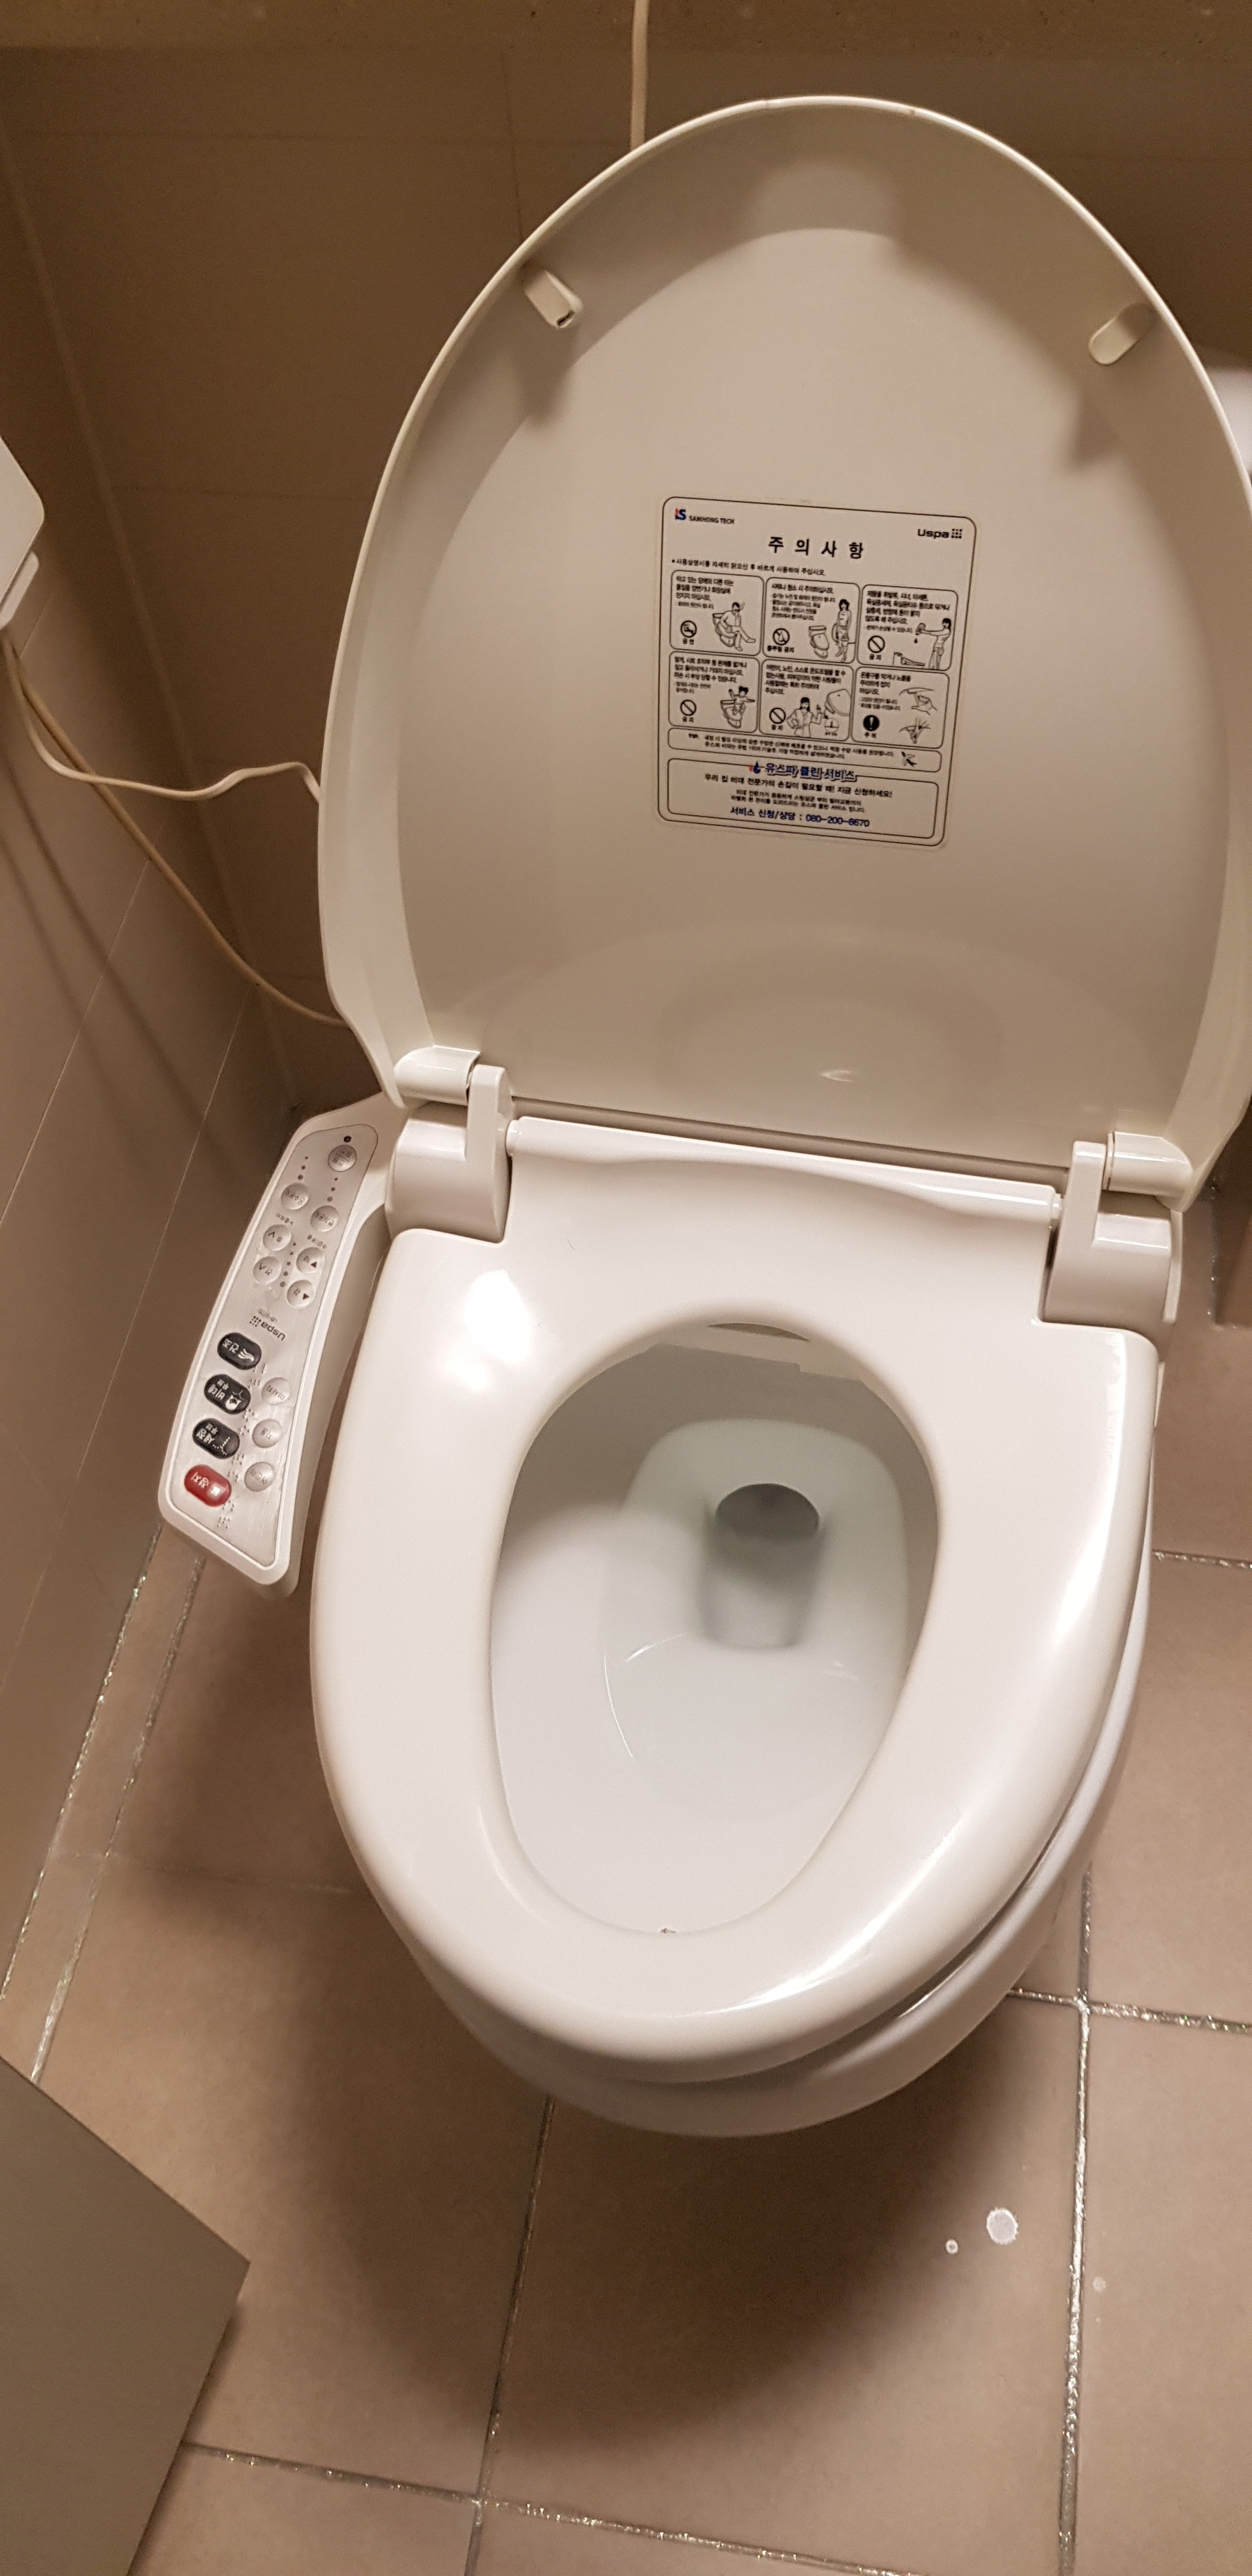 The Toilet Situation In South Korea